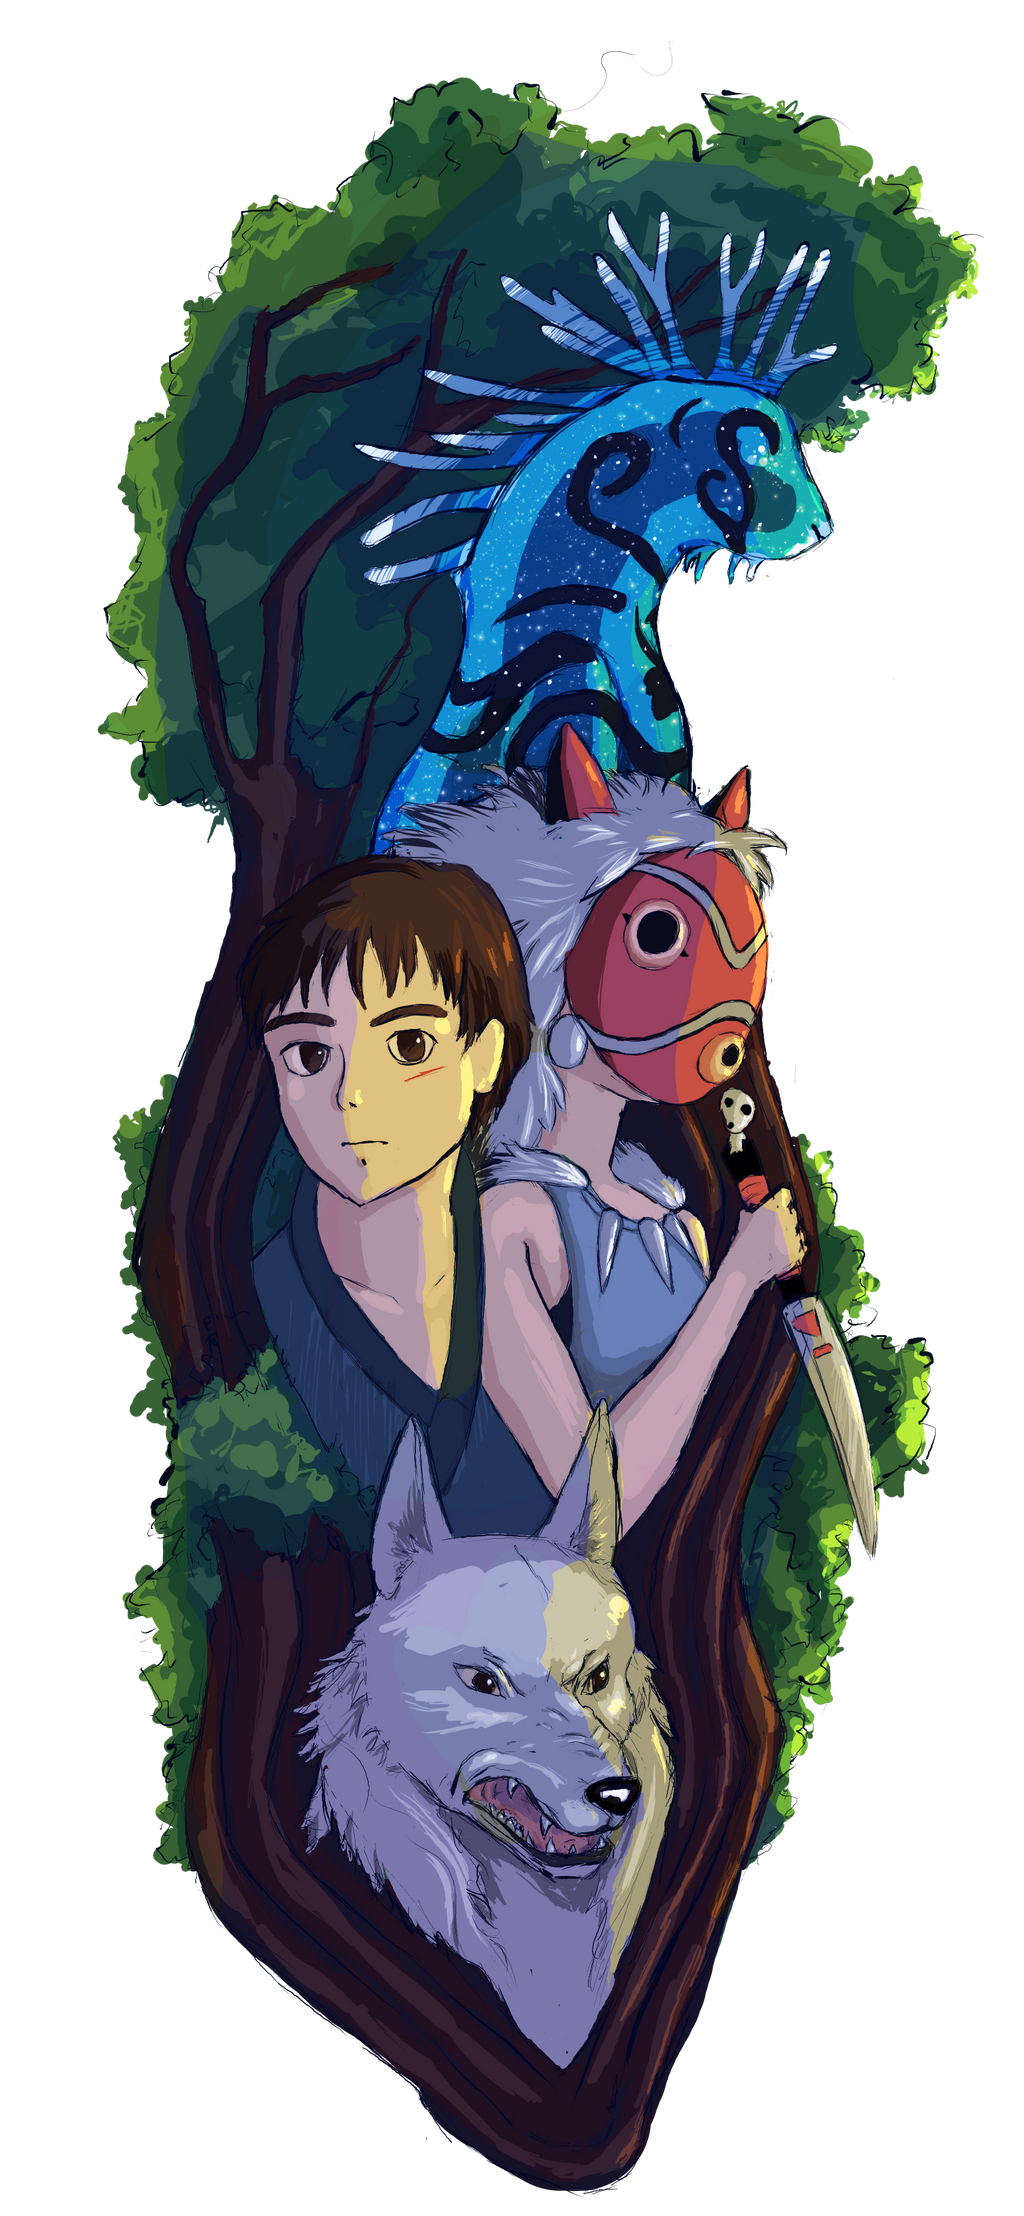 Princess Mononoke Character Collage Commission By Khrestos On Deviantart